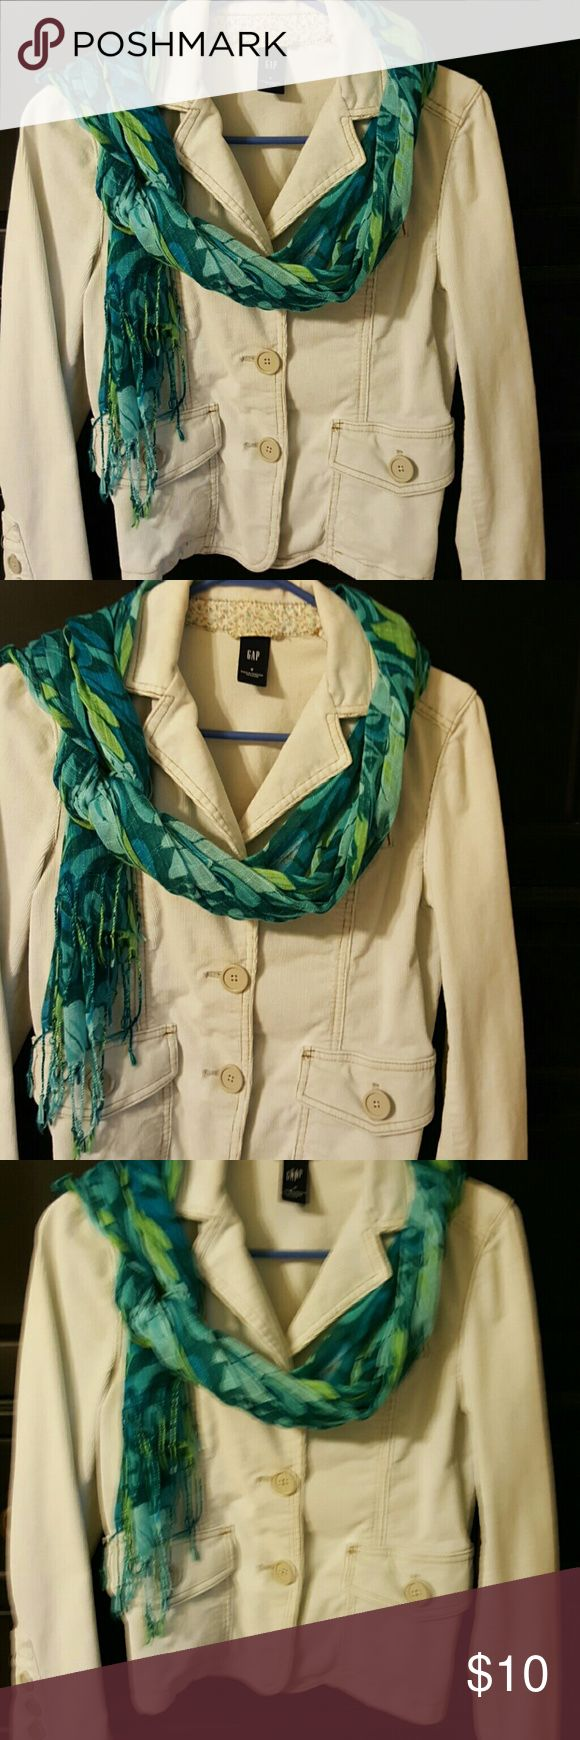 Darling corduroy Gap jacket Cream Gap jacket. Cute with jeans and boots! GAP Jackets & Coats Blazers